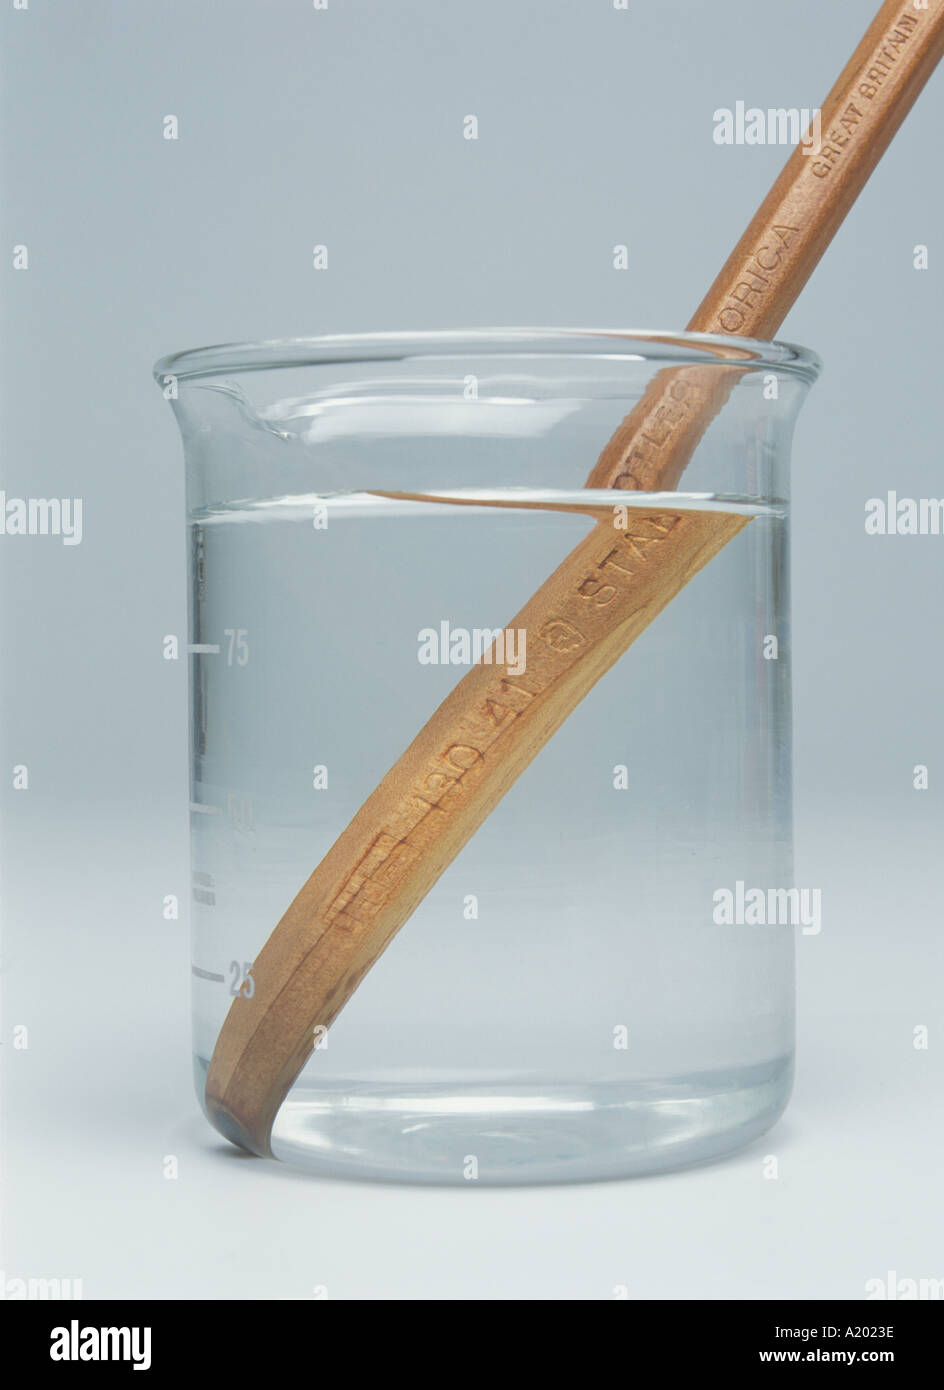 pencil appears bent in water due to refraction - Stock Image